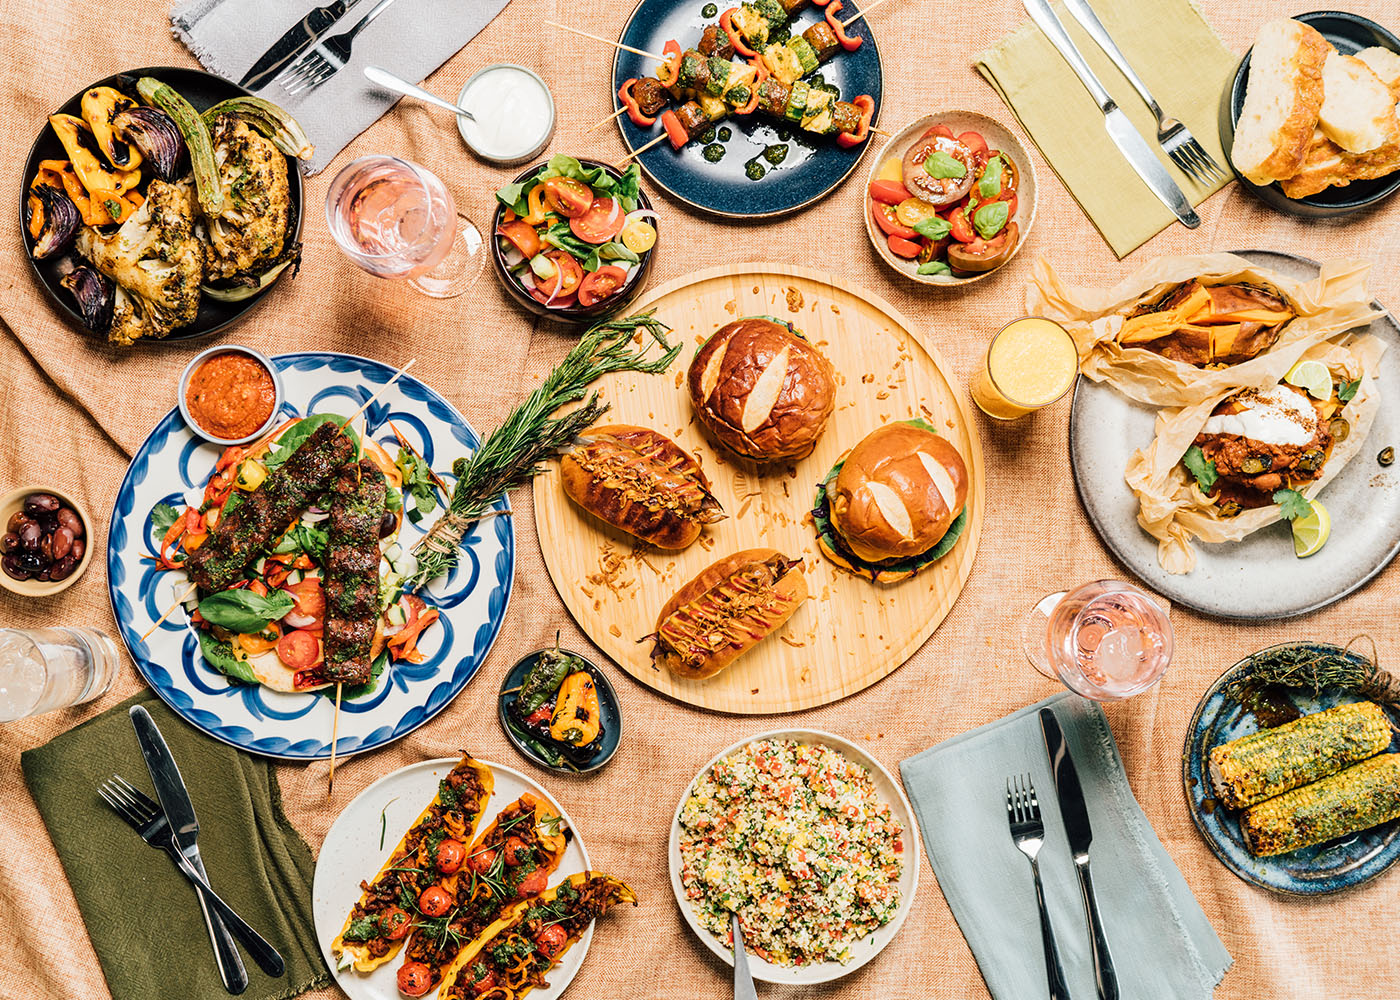 The UK's first plant-based barbecue drive-thru to open in Manchester, The Manc